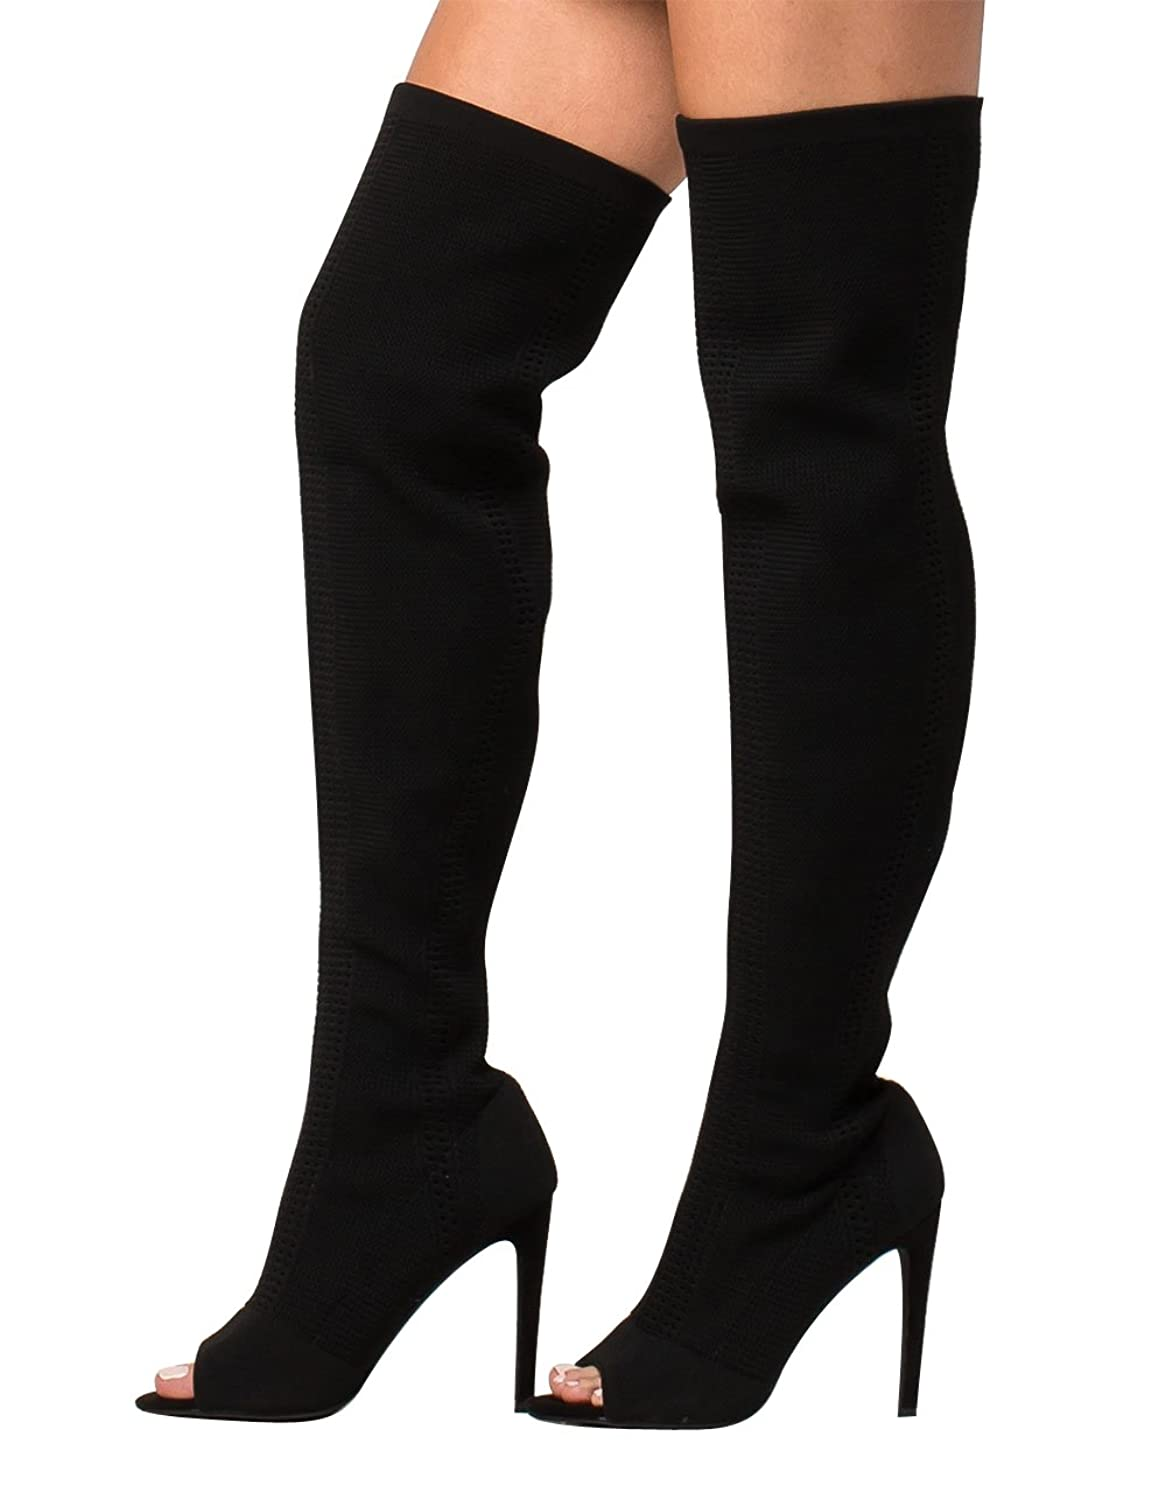 Cape Robbin Elnora-27 Open Peep Toe Knit Stretch Elastic Pull On Thigh High Boot Black